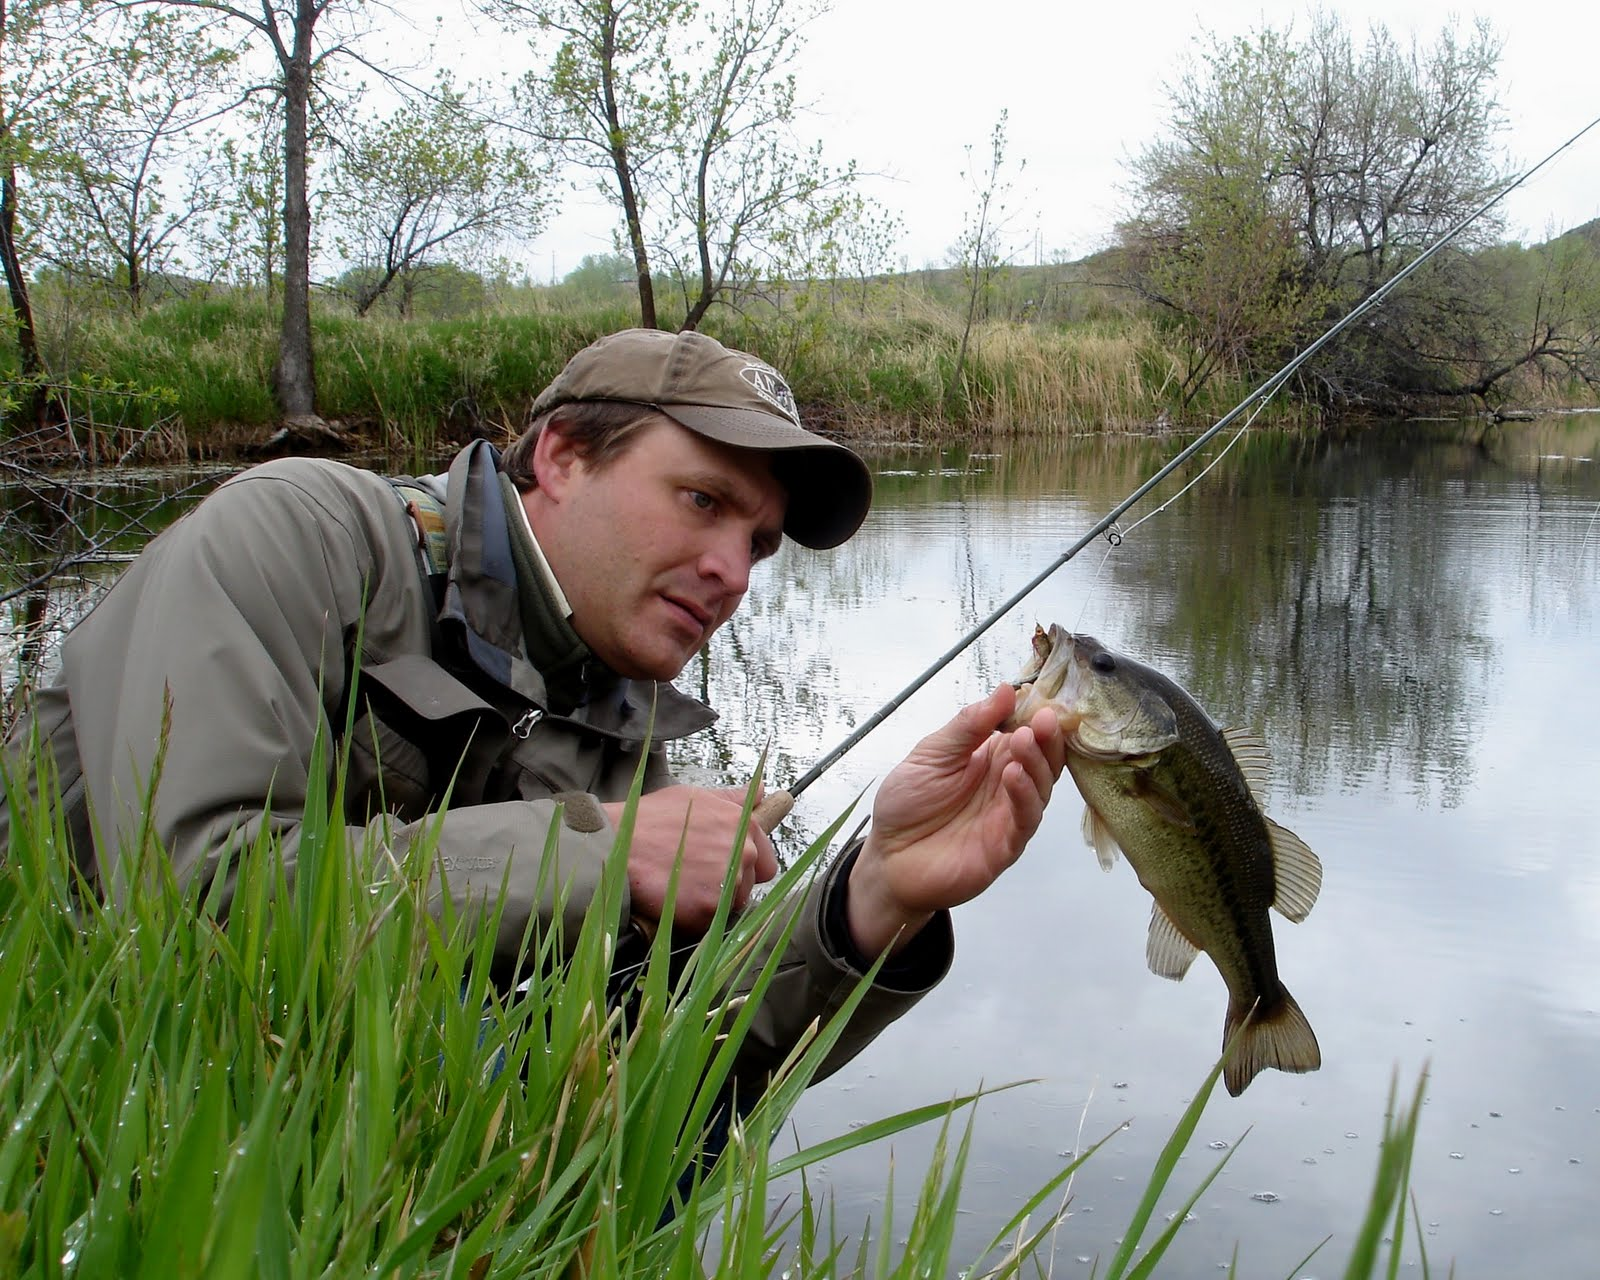 Colorado fly fishing reports blossoms bass bellyaches for Fishing with minnows for bass